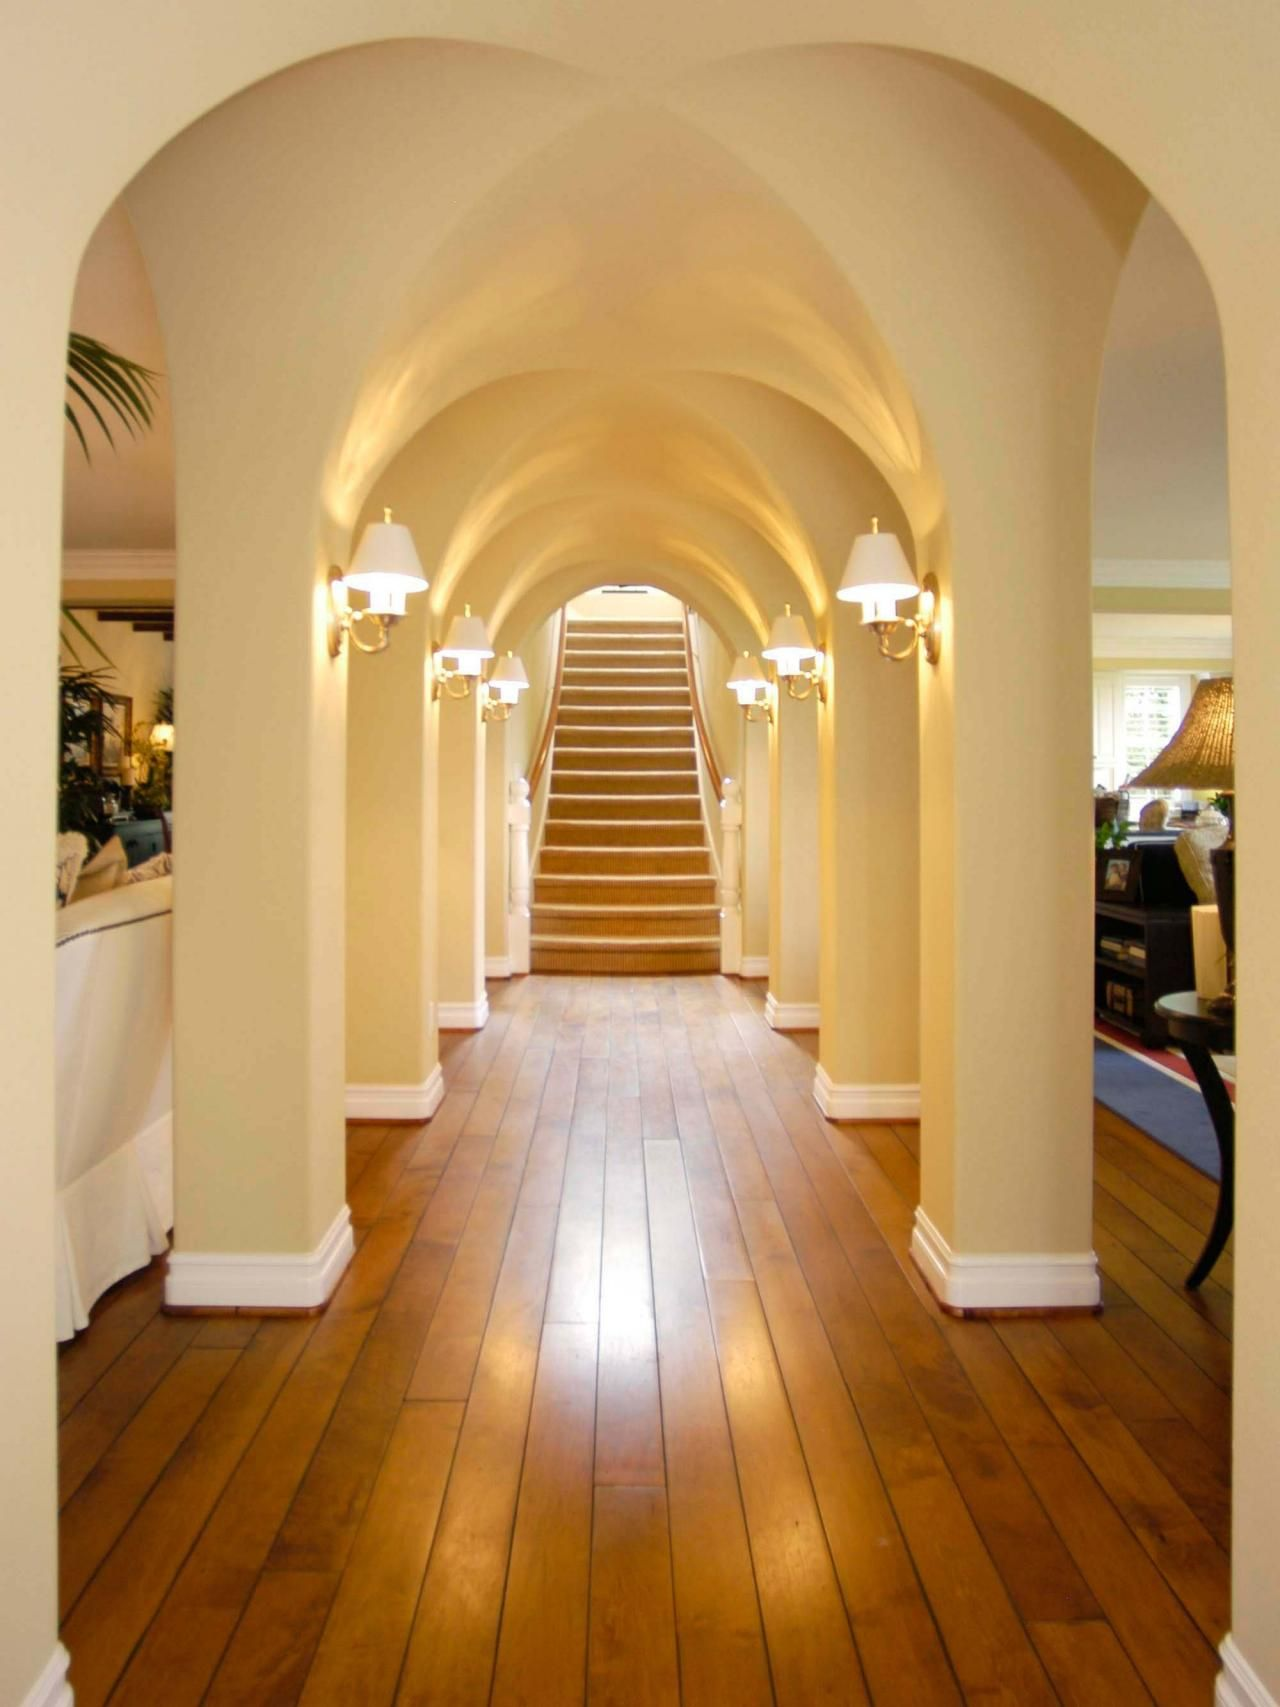 Sculpted archways lead to a staircase in this elegant ...